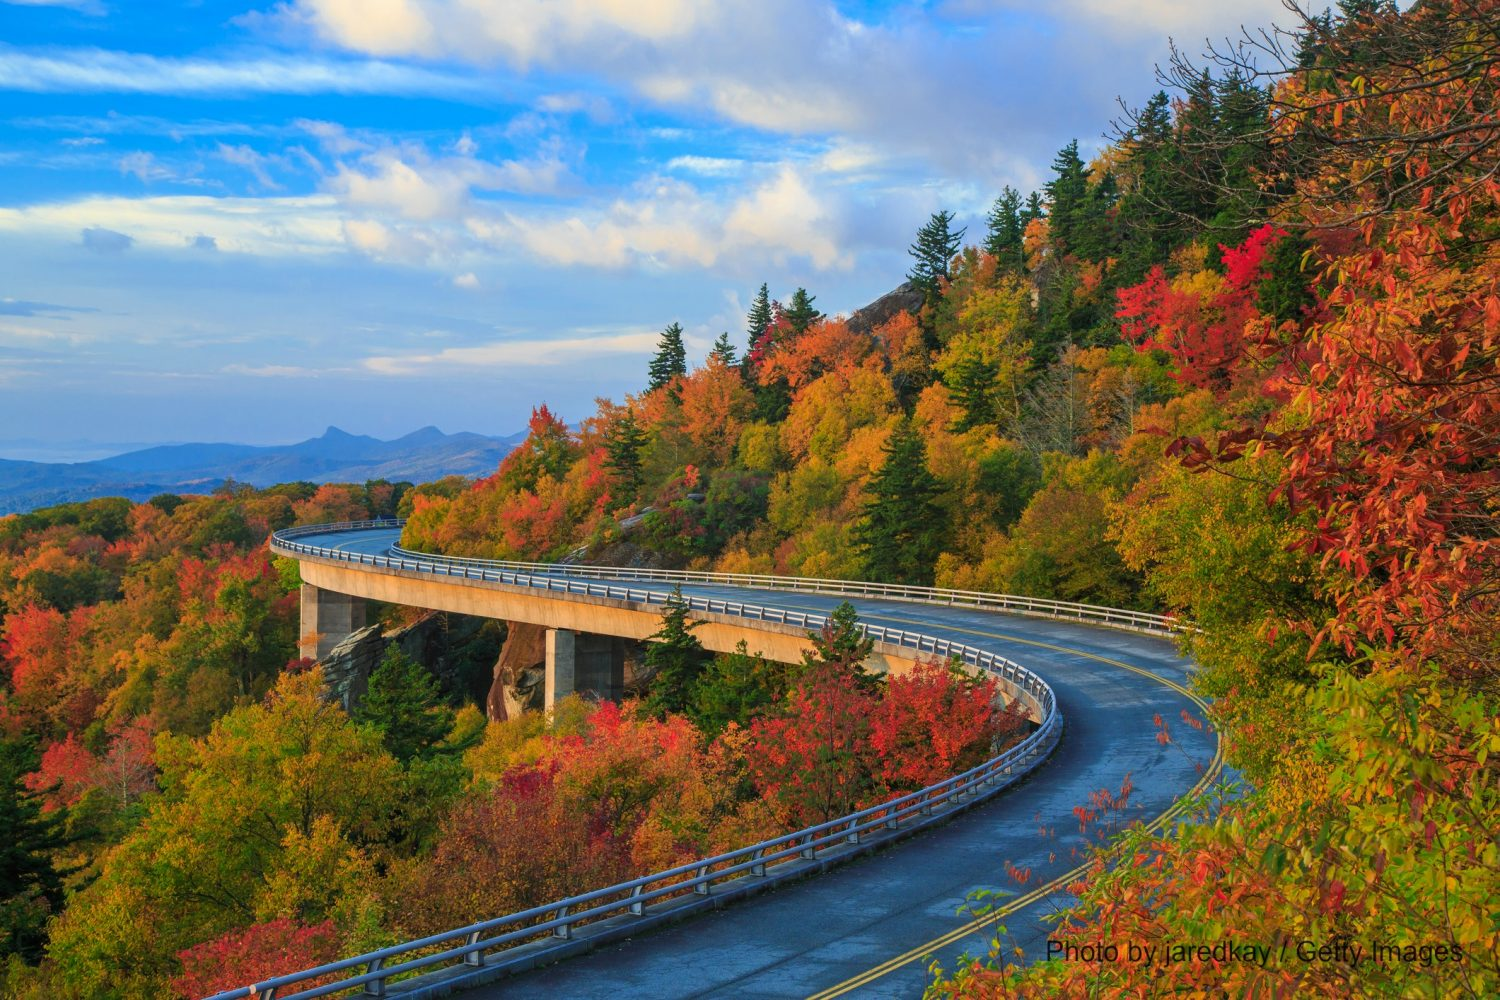 Enjoy driving the Blue Ridge Parkway near Asheville